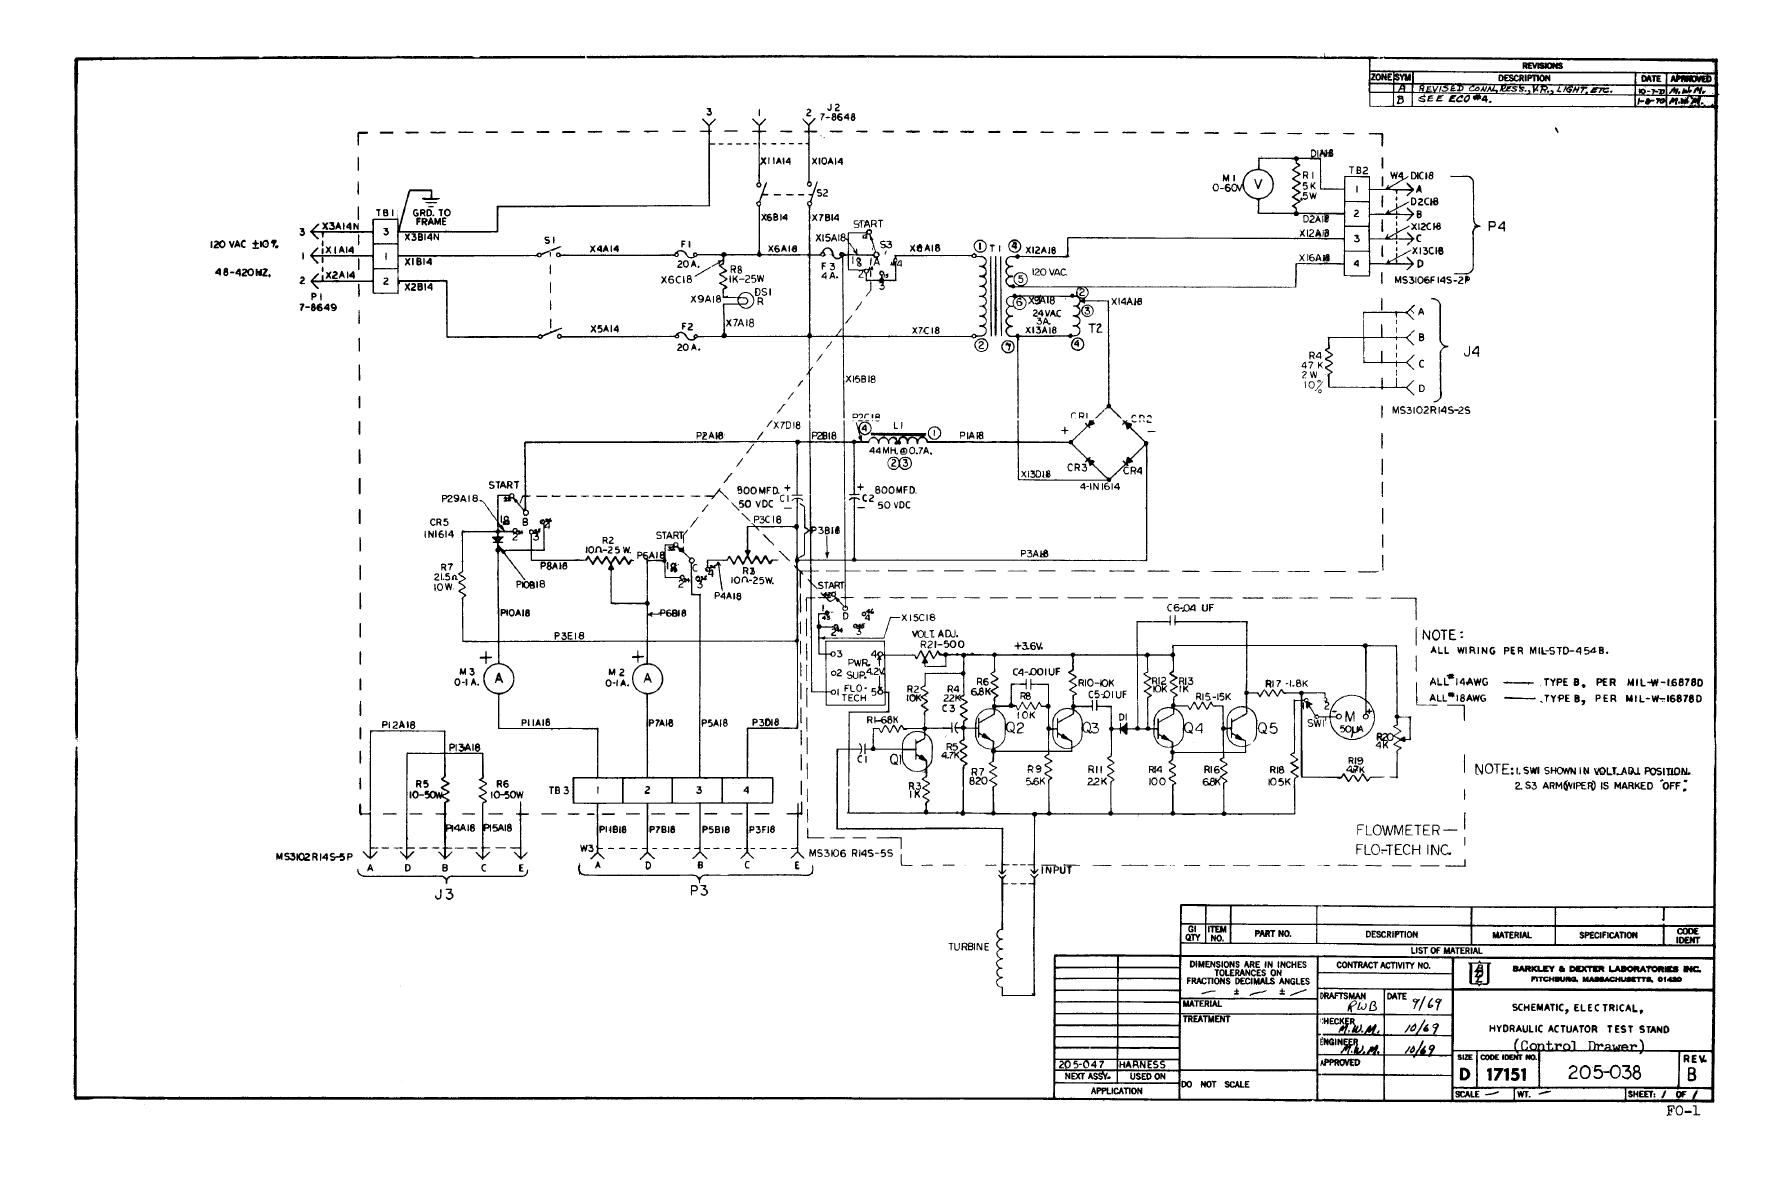 Wiring Diagram Test Not Lossing Electrical Practice Schematic Library Rh 51 Evitta De Of Series Lamp